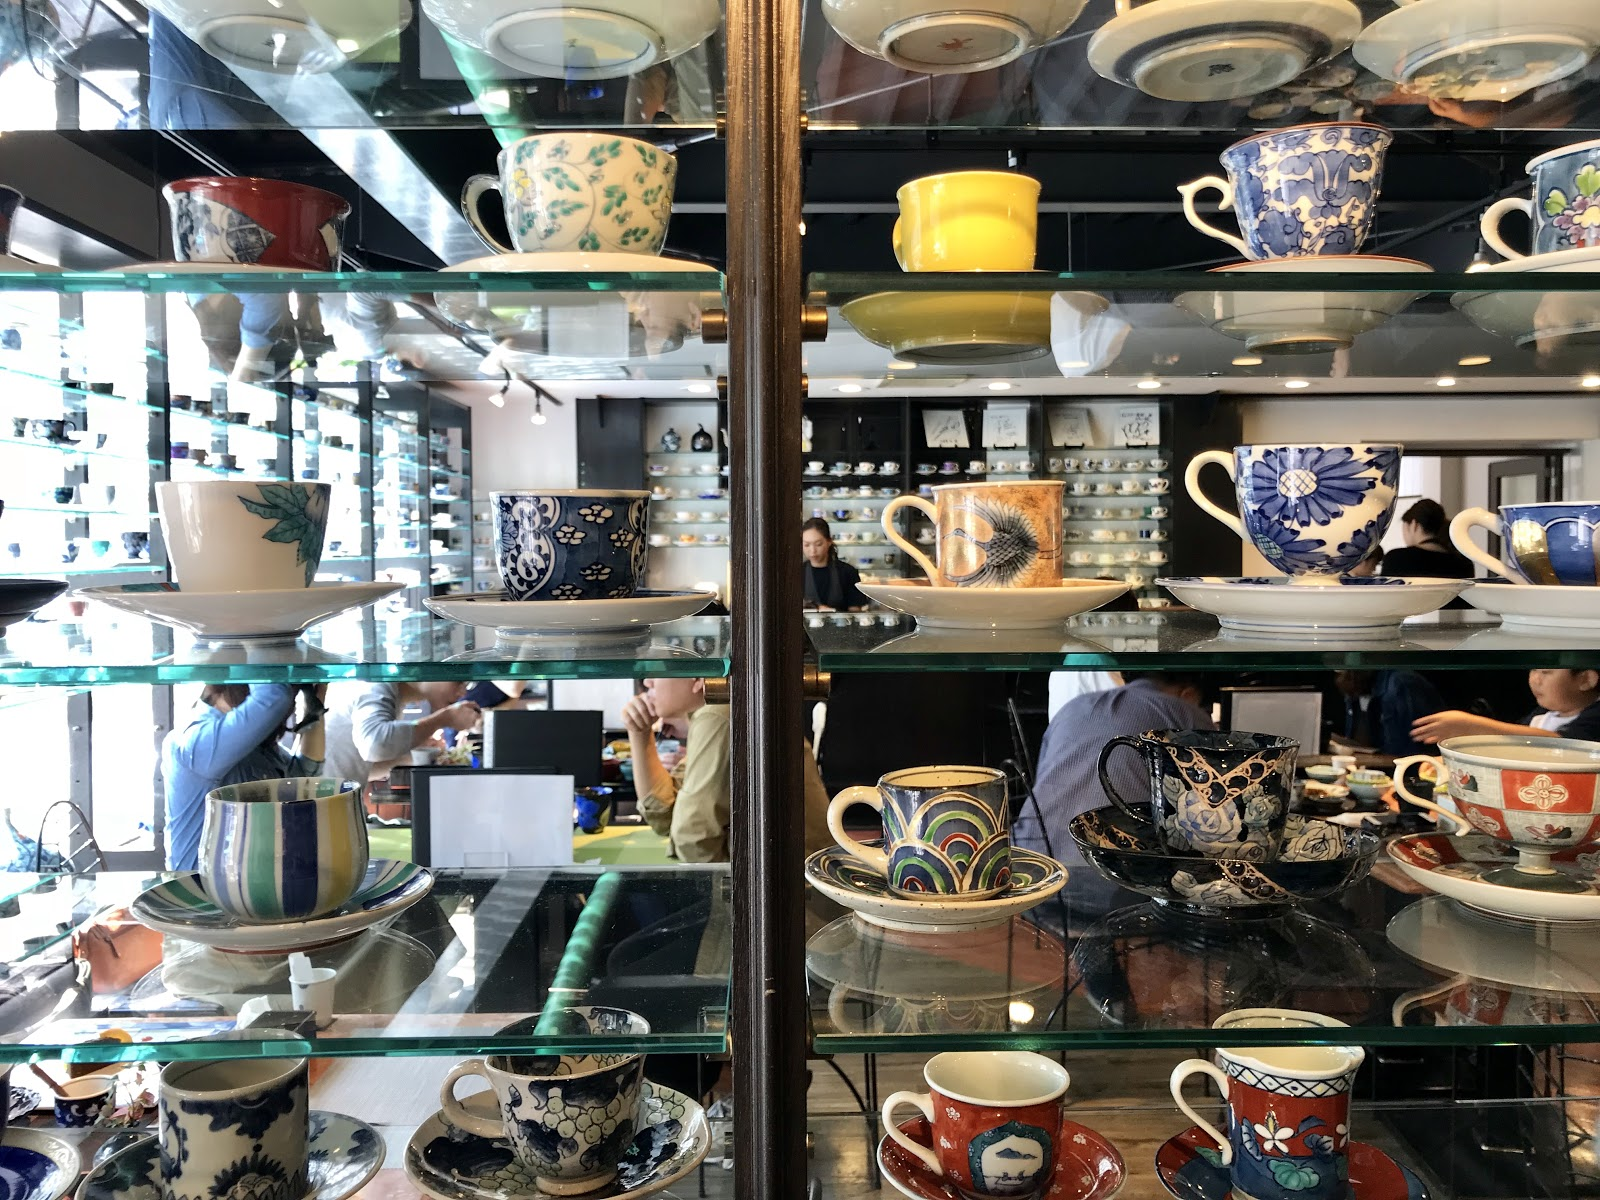 A picture of a shelf displaying the varied cup and saucer combinations